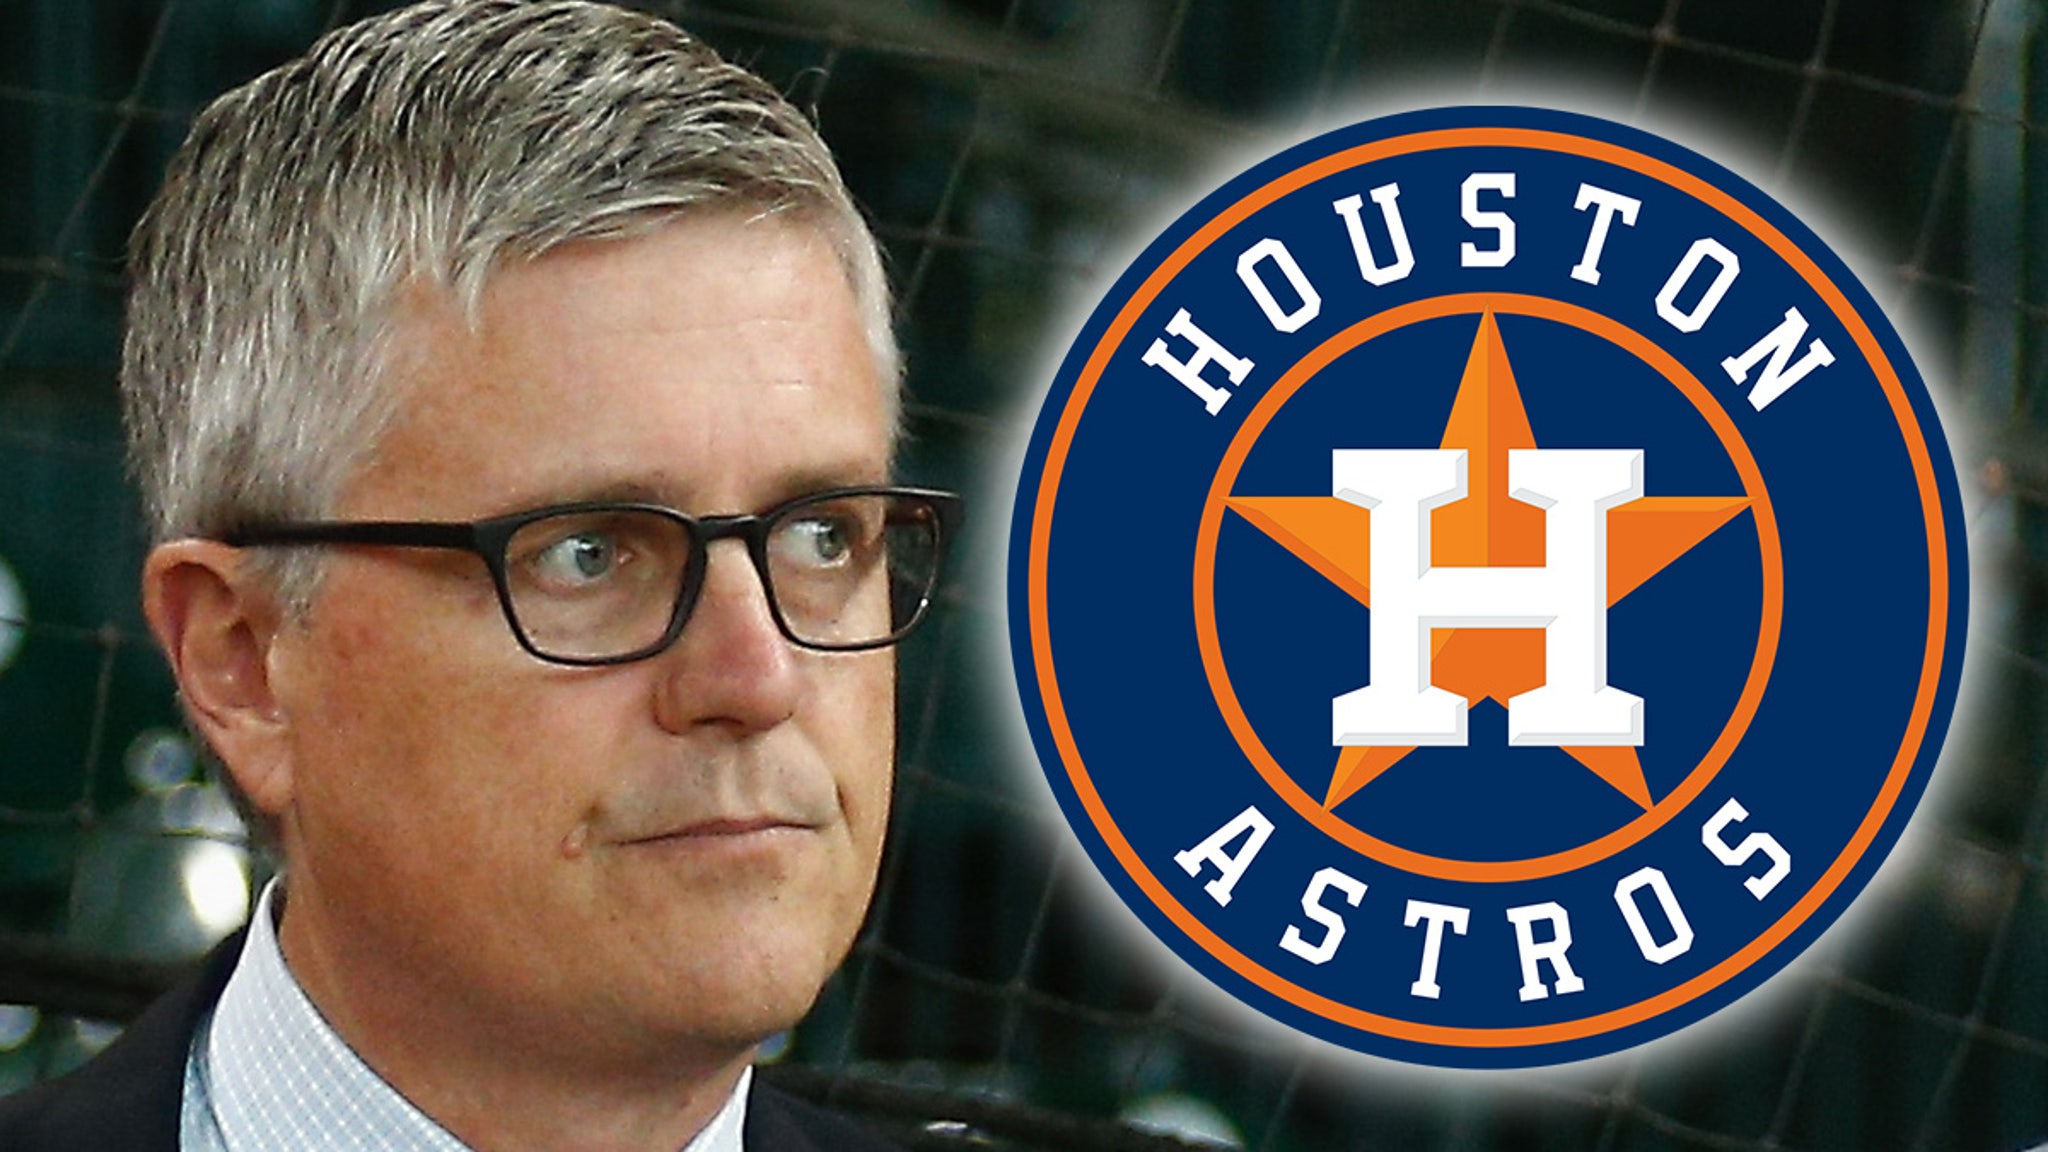 Ex-Astros GM Jeff Luhnow Claims 'Stros Are Still Employing Tons Of Cheaters ... Despite 'Pretty Clear' Evidence